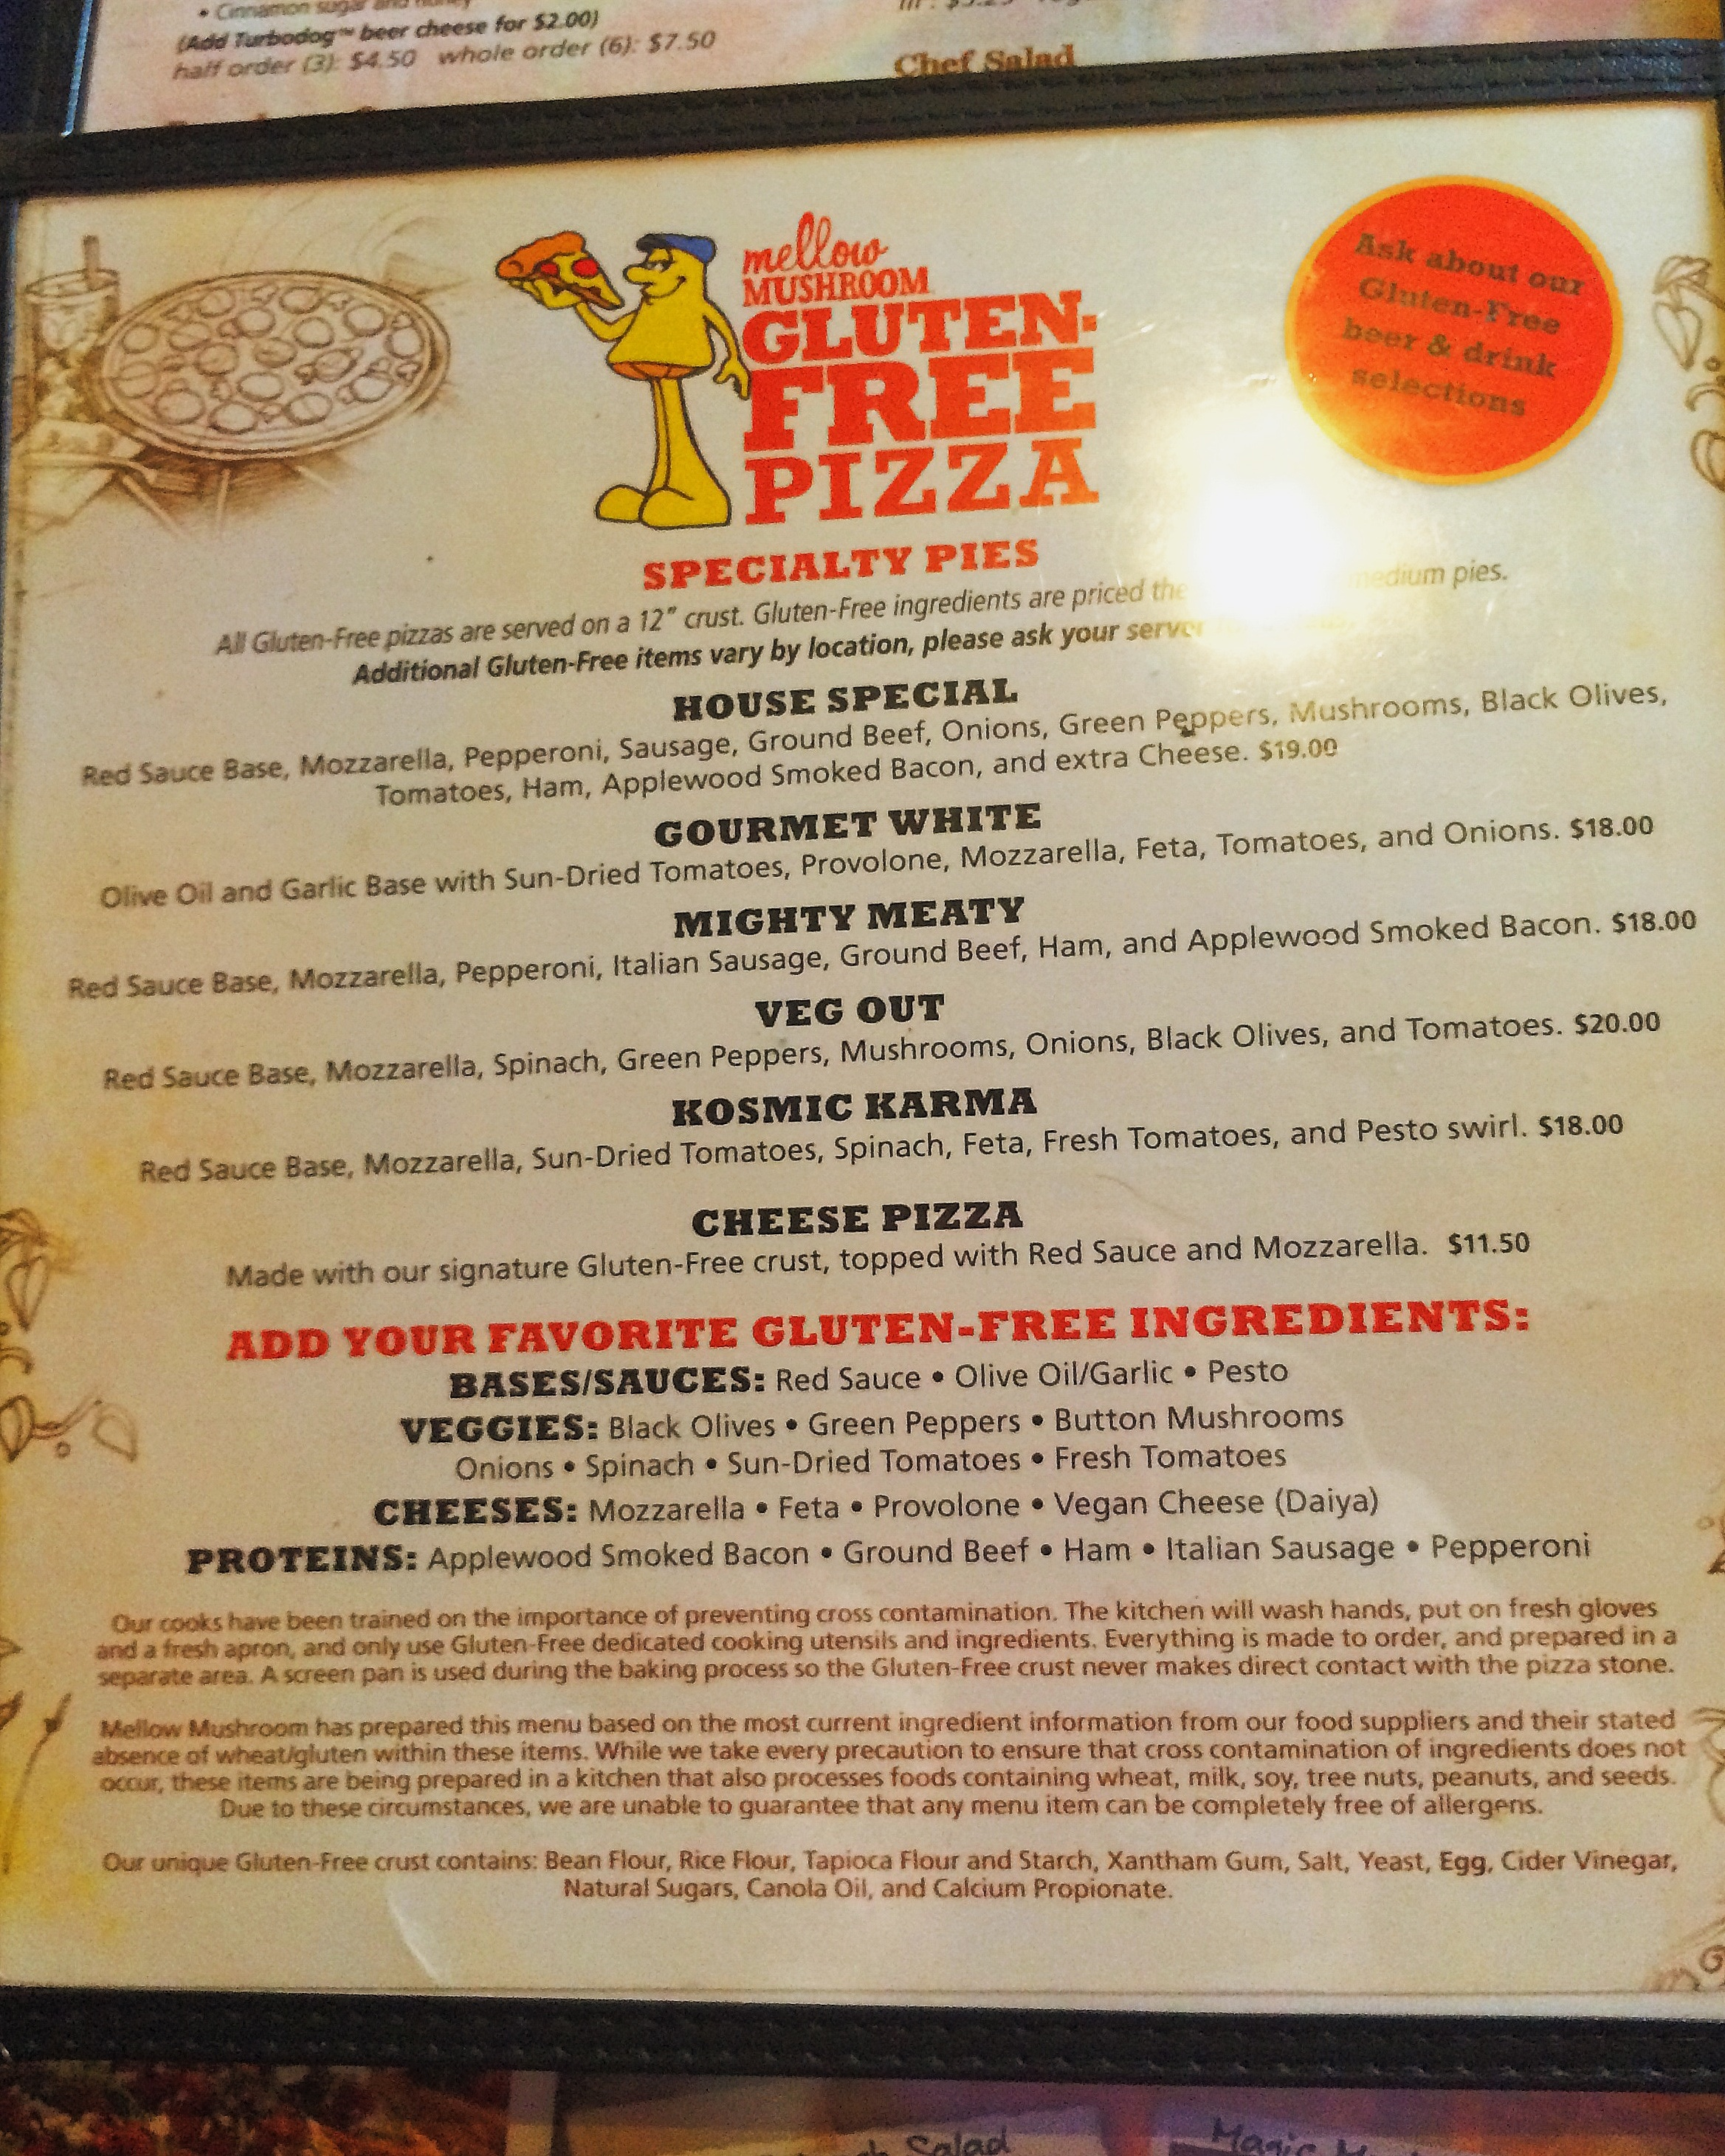 White apron gluten free - I Ordered The Mighty Meaty Gluten Free Pizza Which Includes A Red Sauce Base Mozzarella Pepperoni Italian Sausage Ground Beef Ham And Applewood Smoked